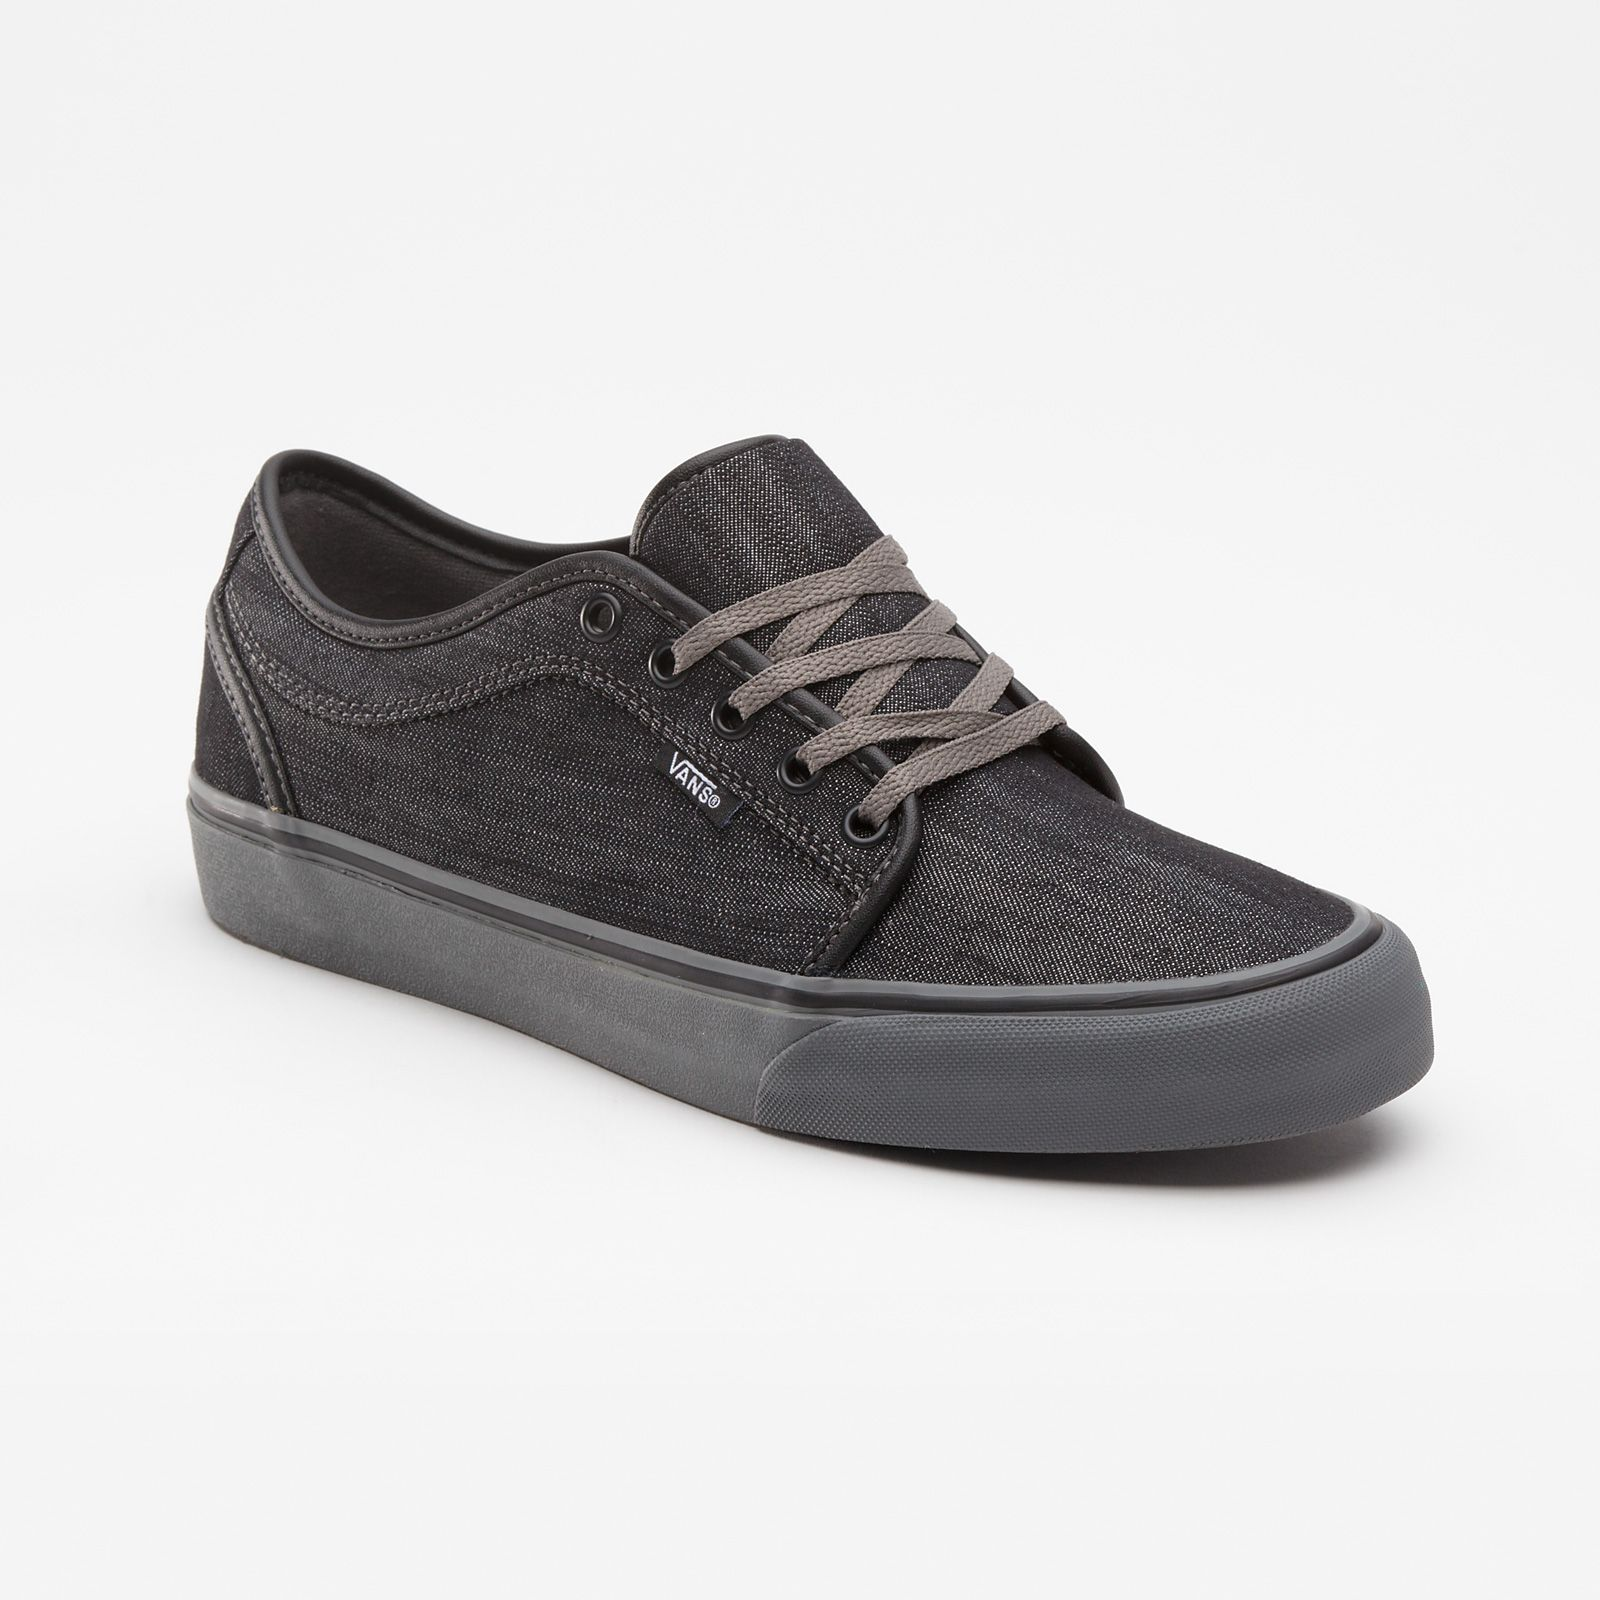 Chukka Shoes | Shop Chukka Shoes | Chukka shoes, Vans chukka